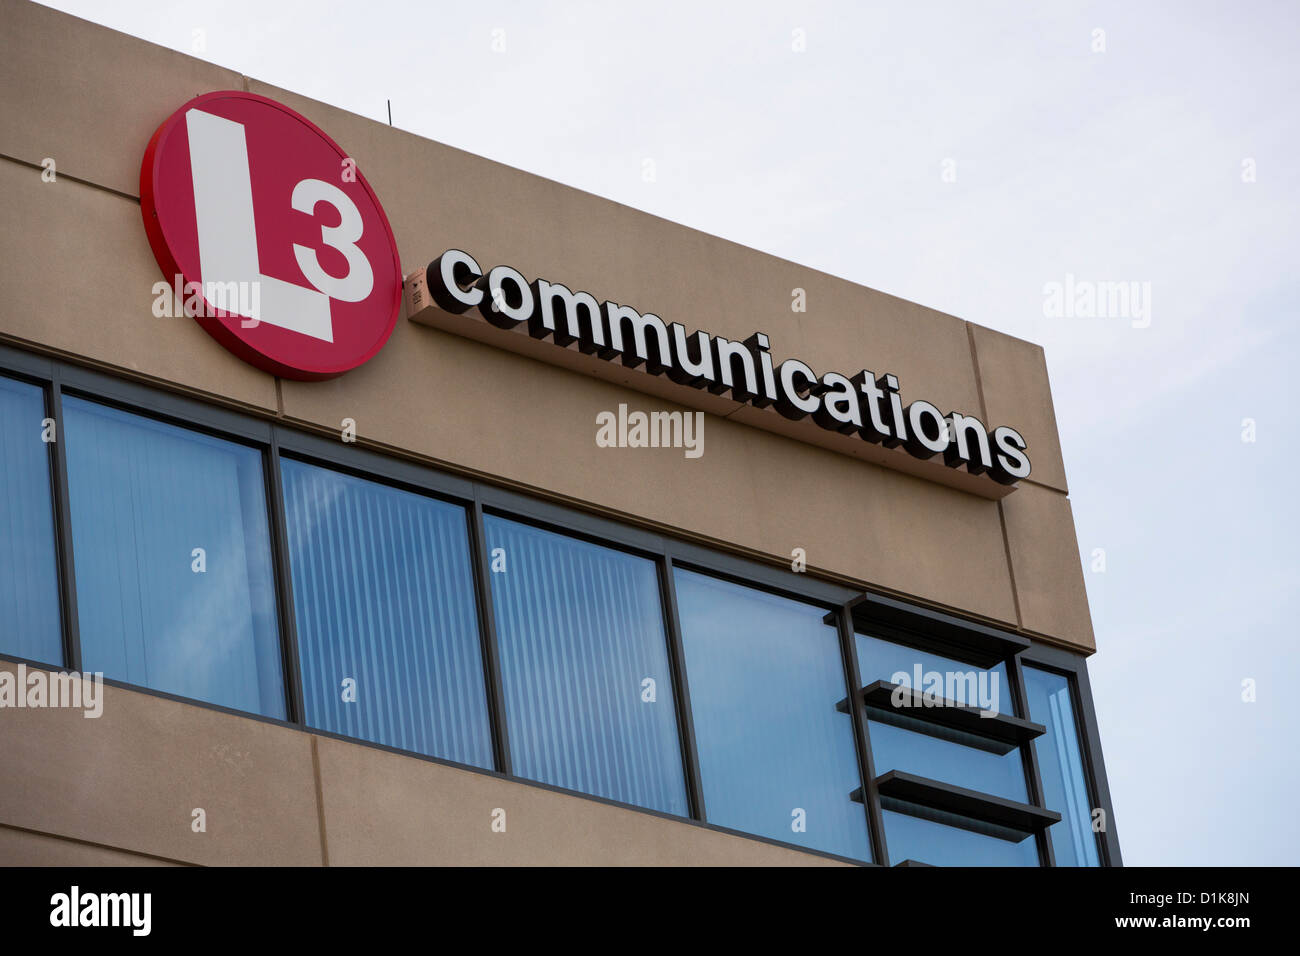 An office building occupied by defense contractor L3 Communications.  - Stock Image